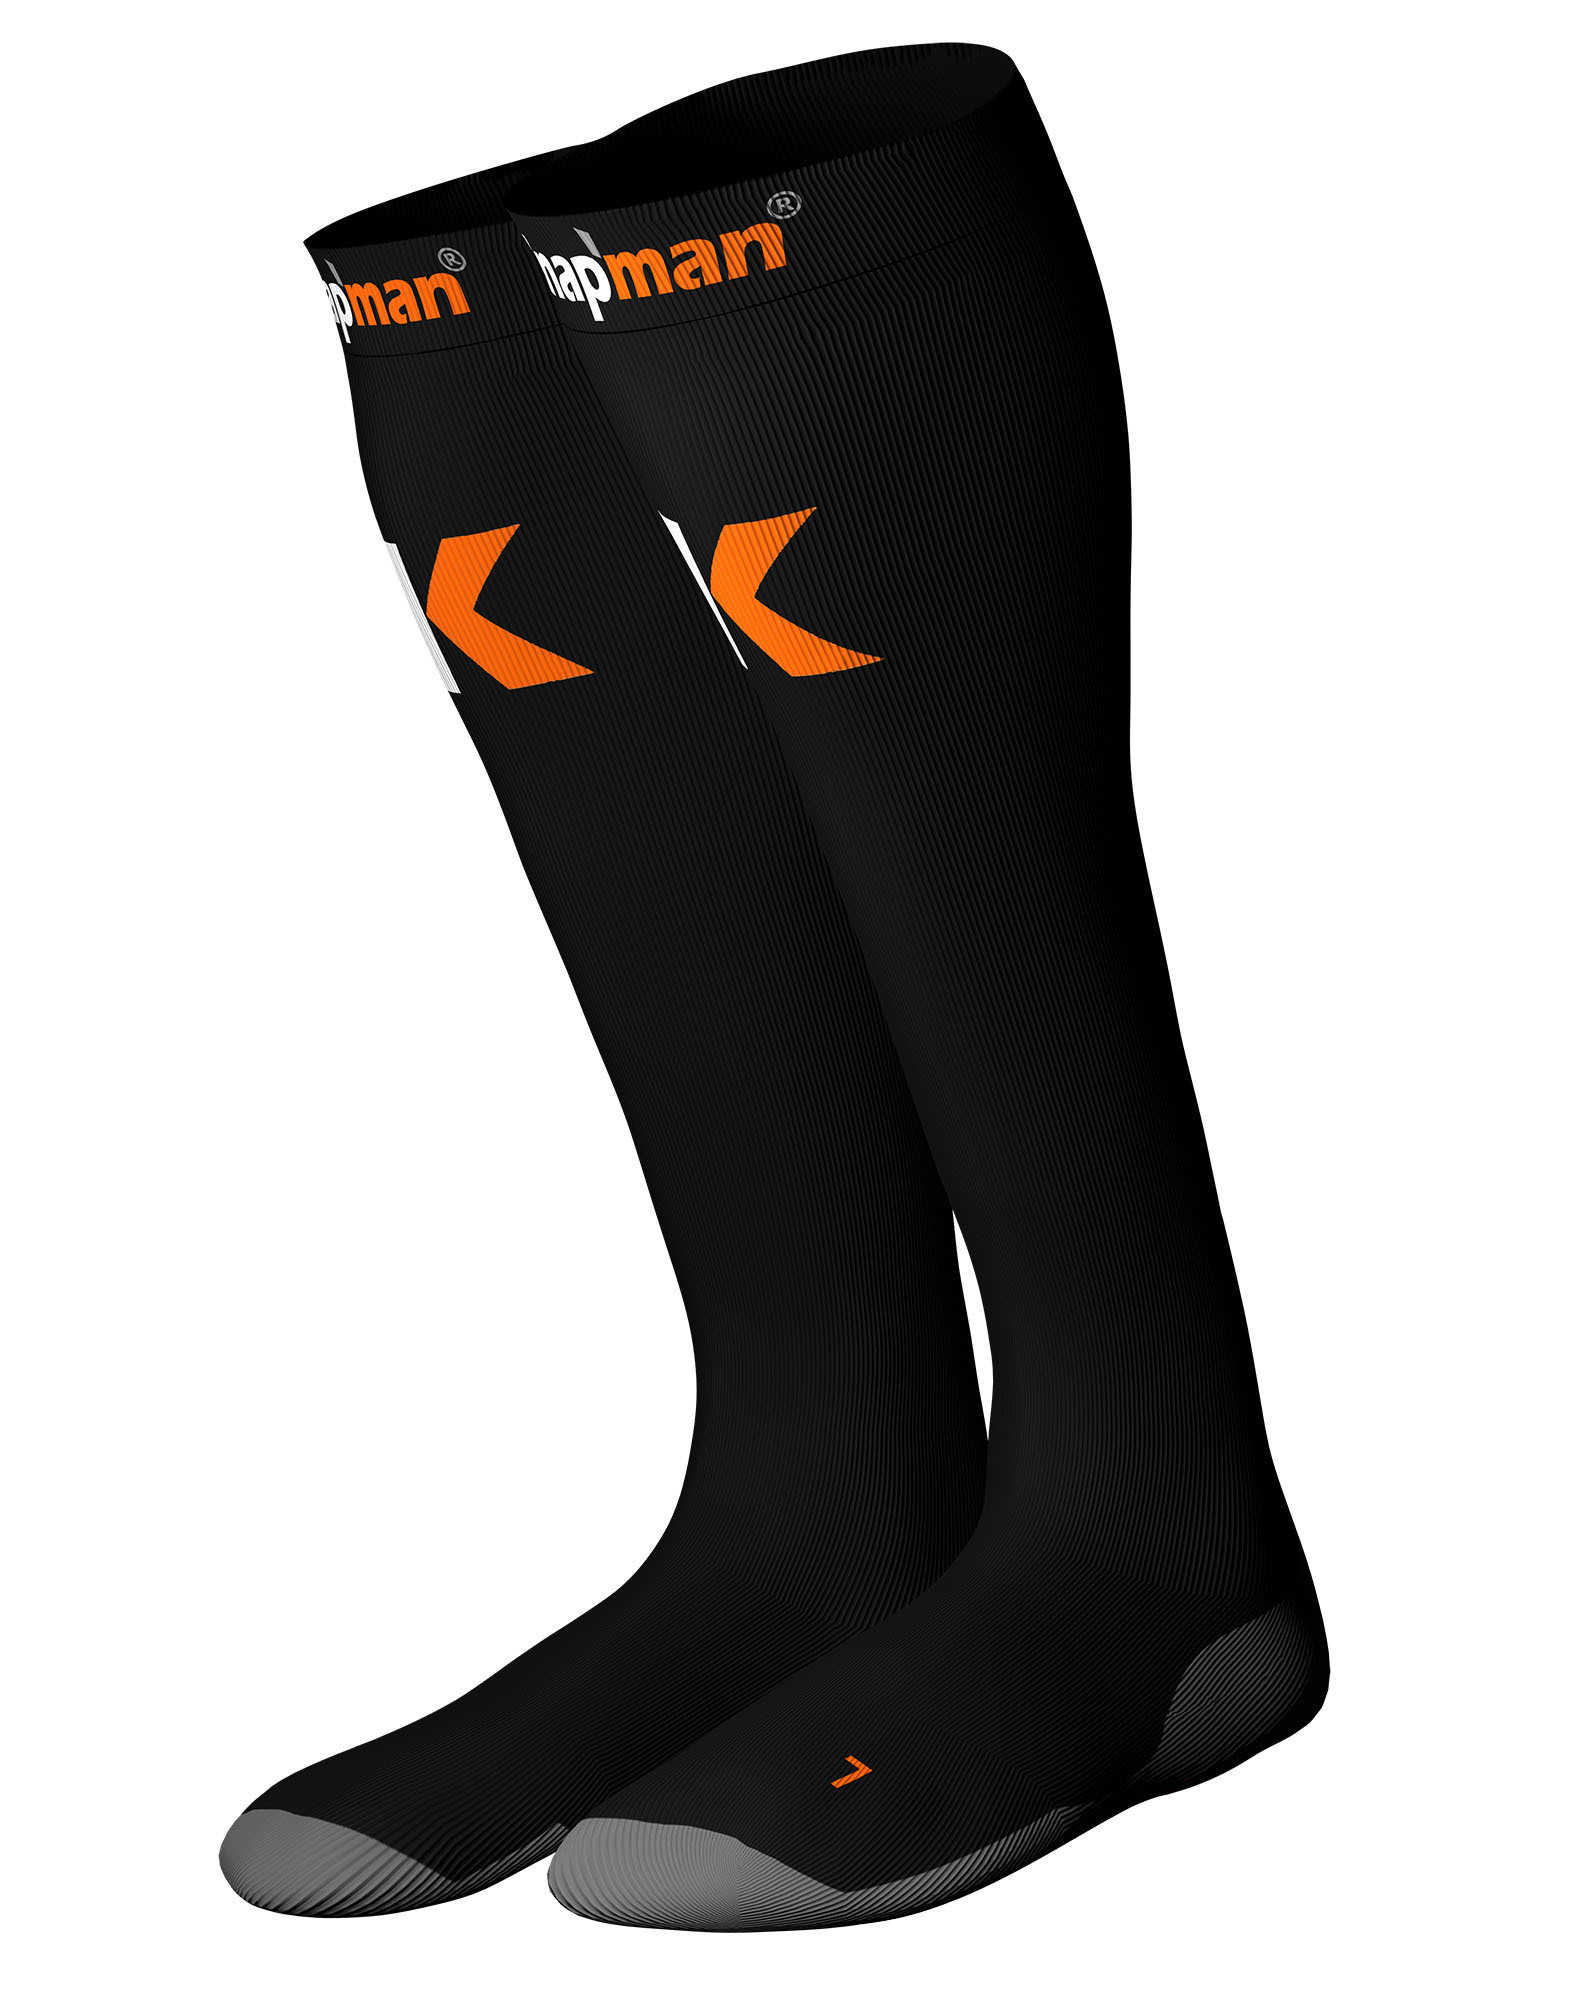 Knap'man Compression Socks Black